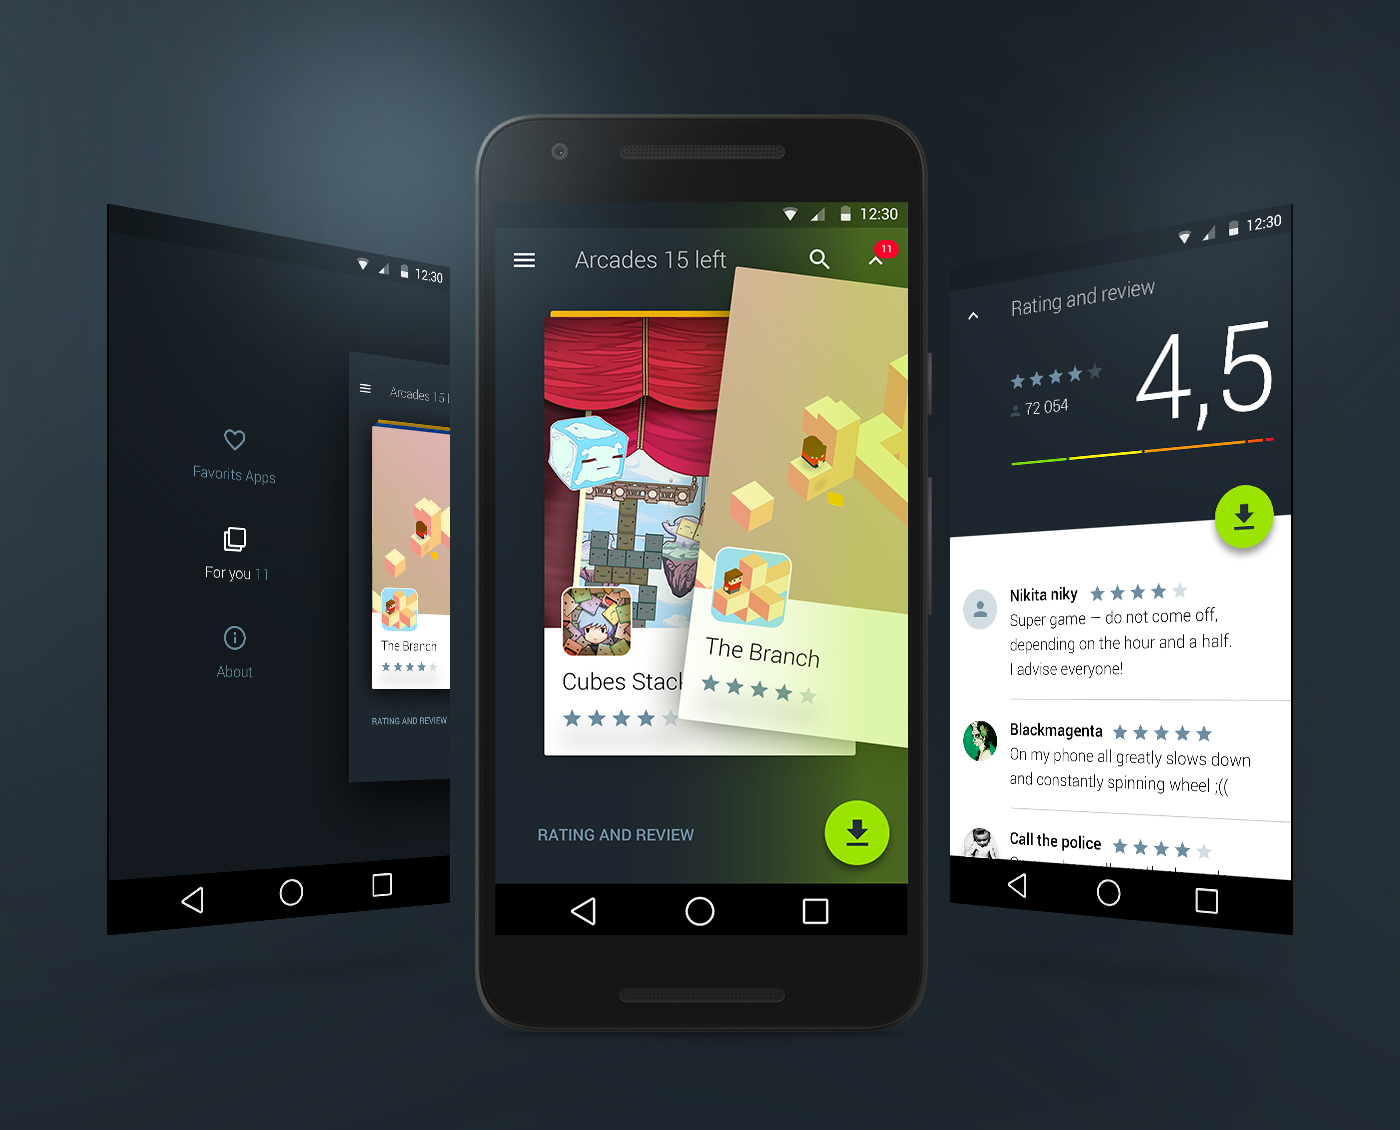 android market app application material design google ux UI clear flat Interface user interface Icon icons